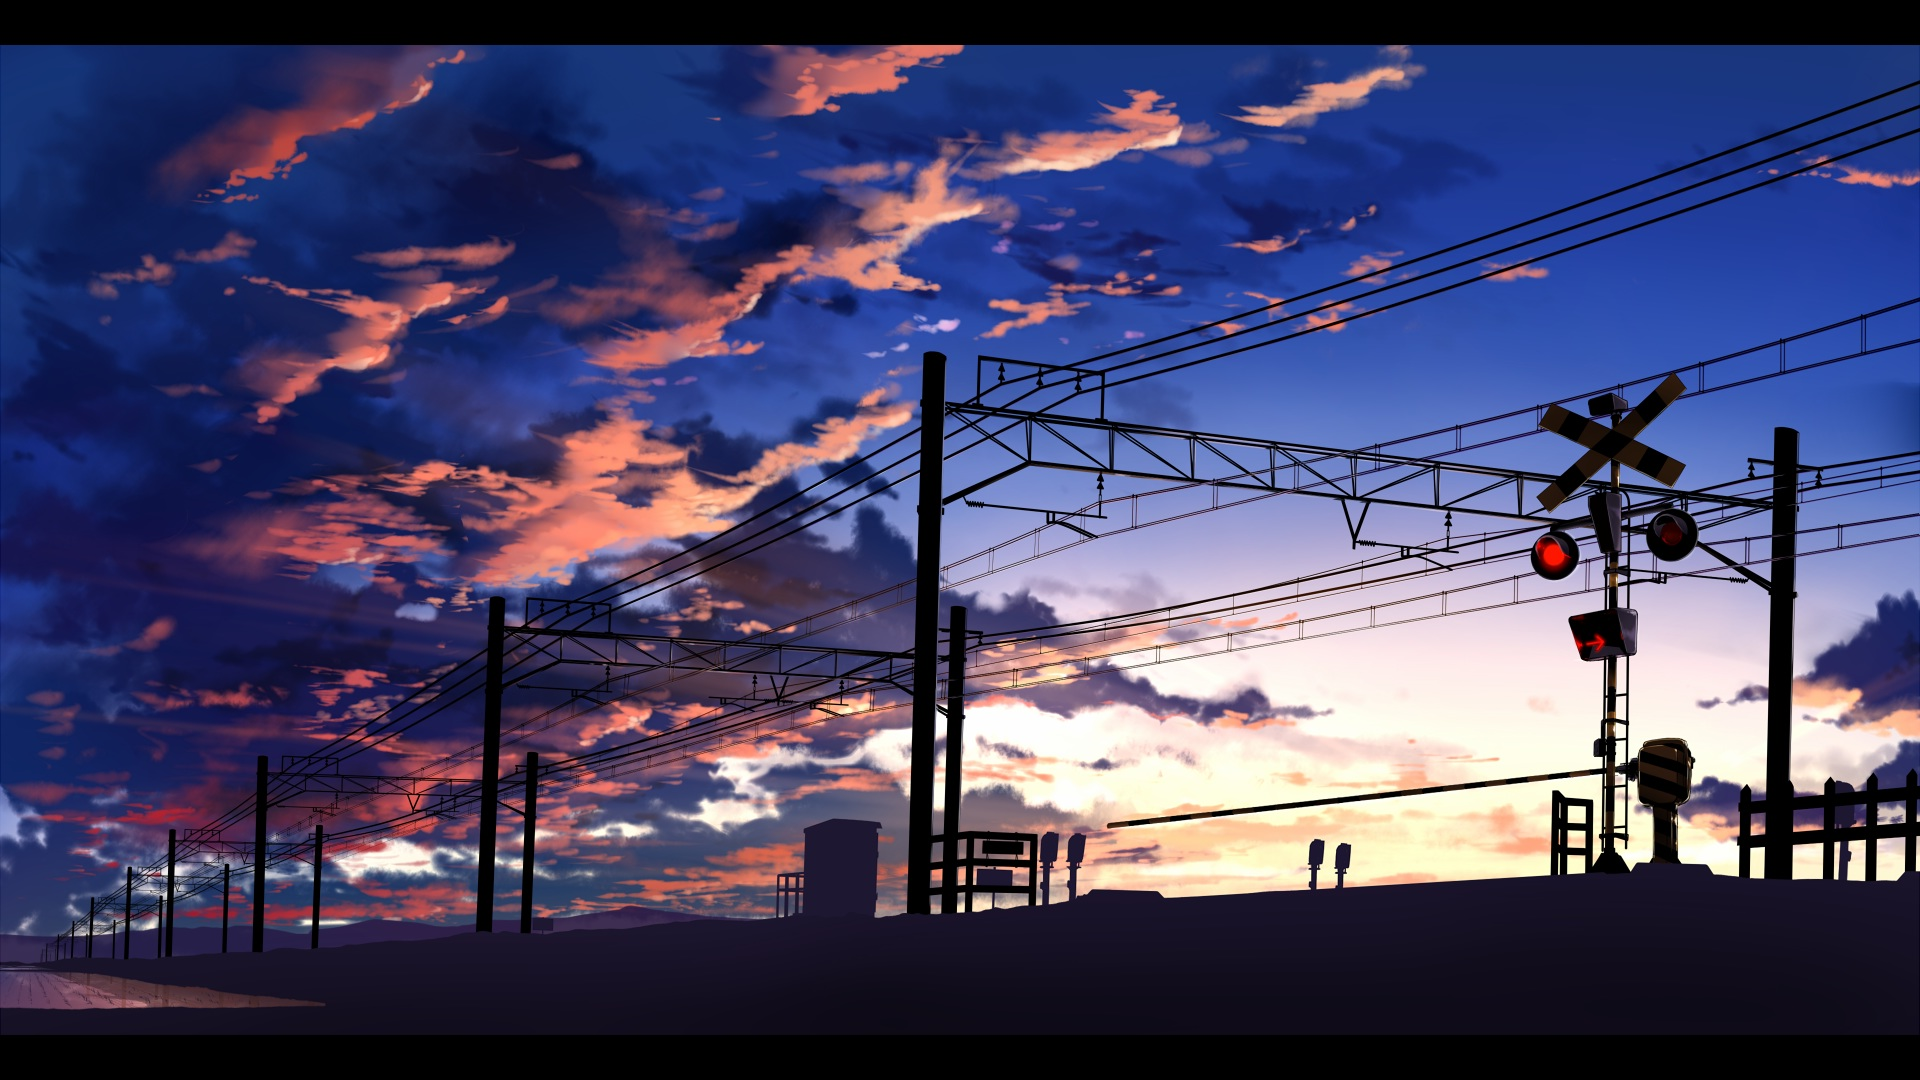 Animal Crossing Desktop Wallpaper Anime Train Station Power Lines Clouds Traffic Lights